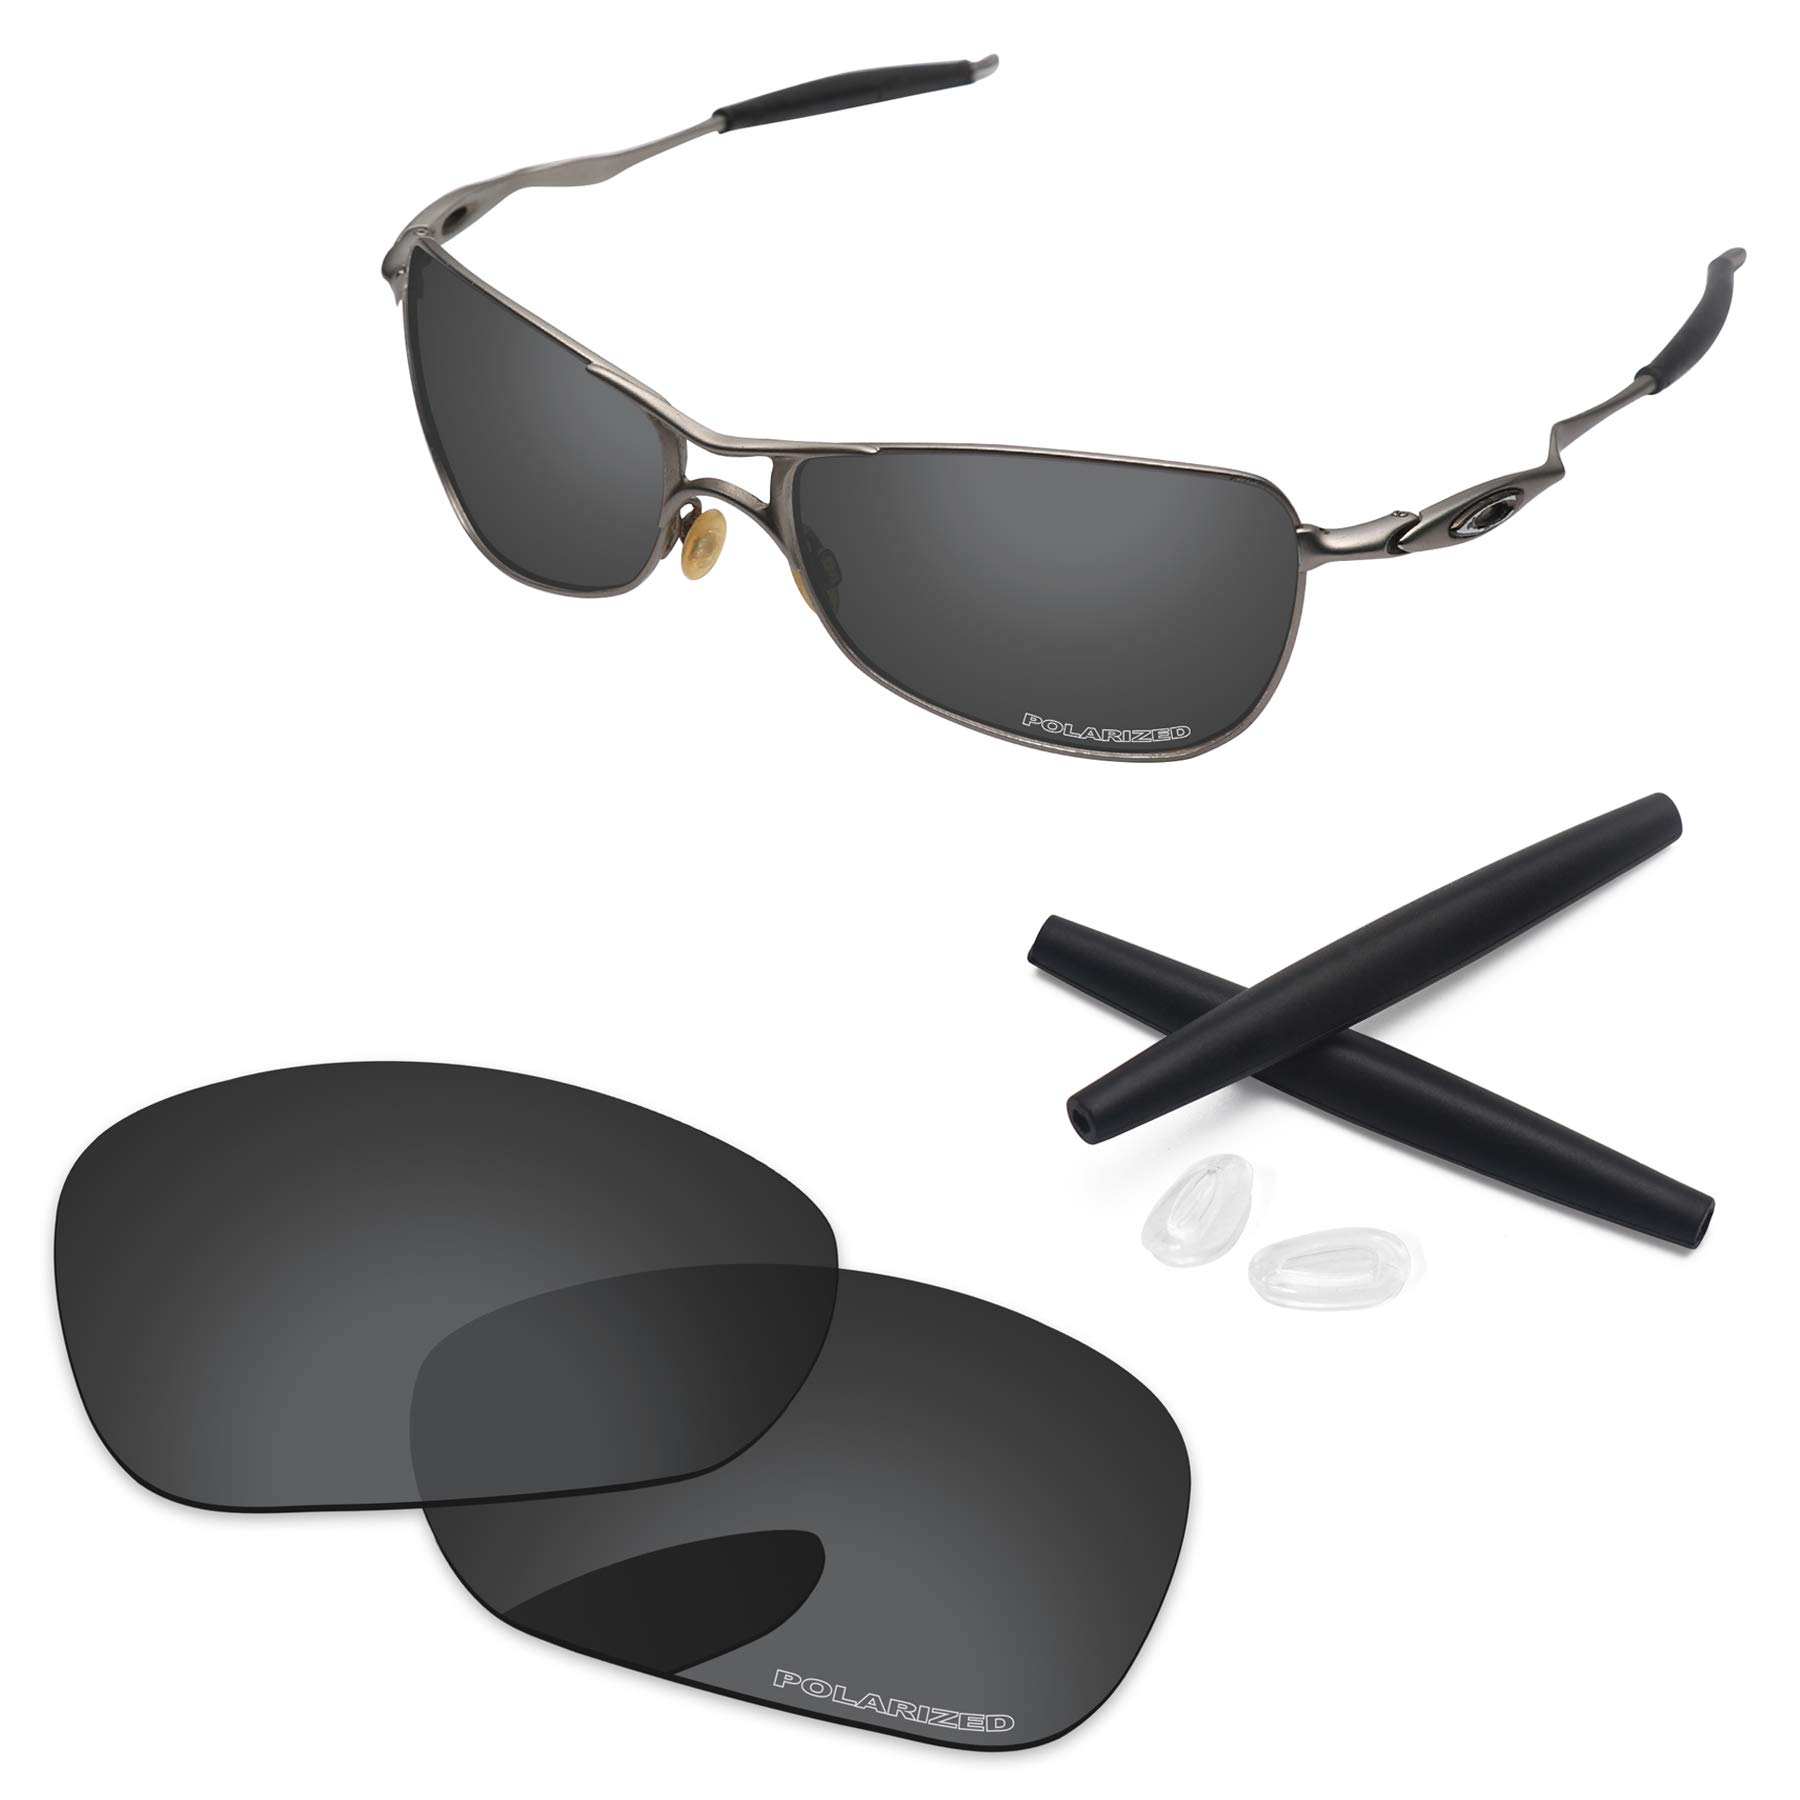 PapaViva Lenses Replacement & Rubber Kits for Oakley Crosshair 1.0